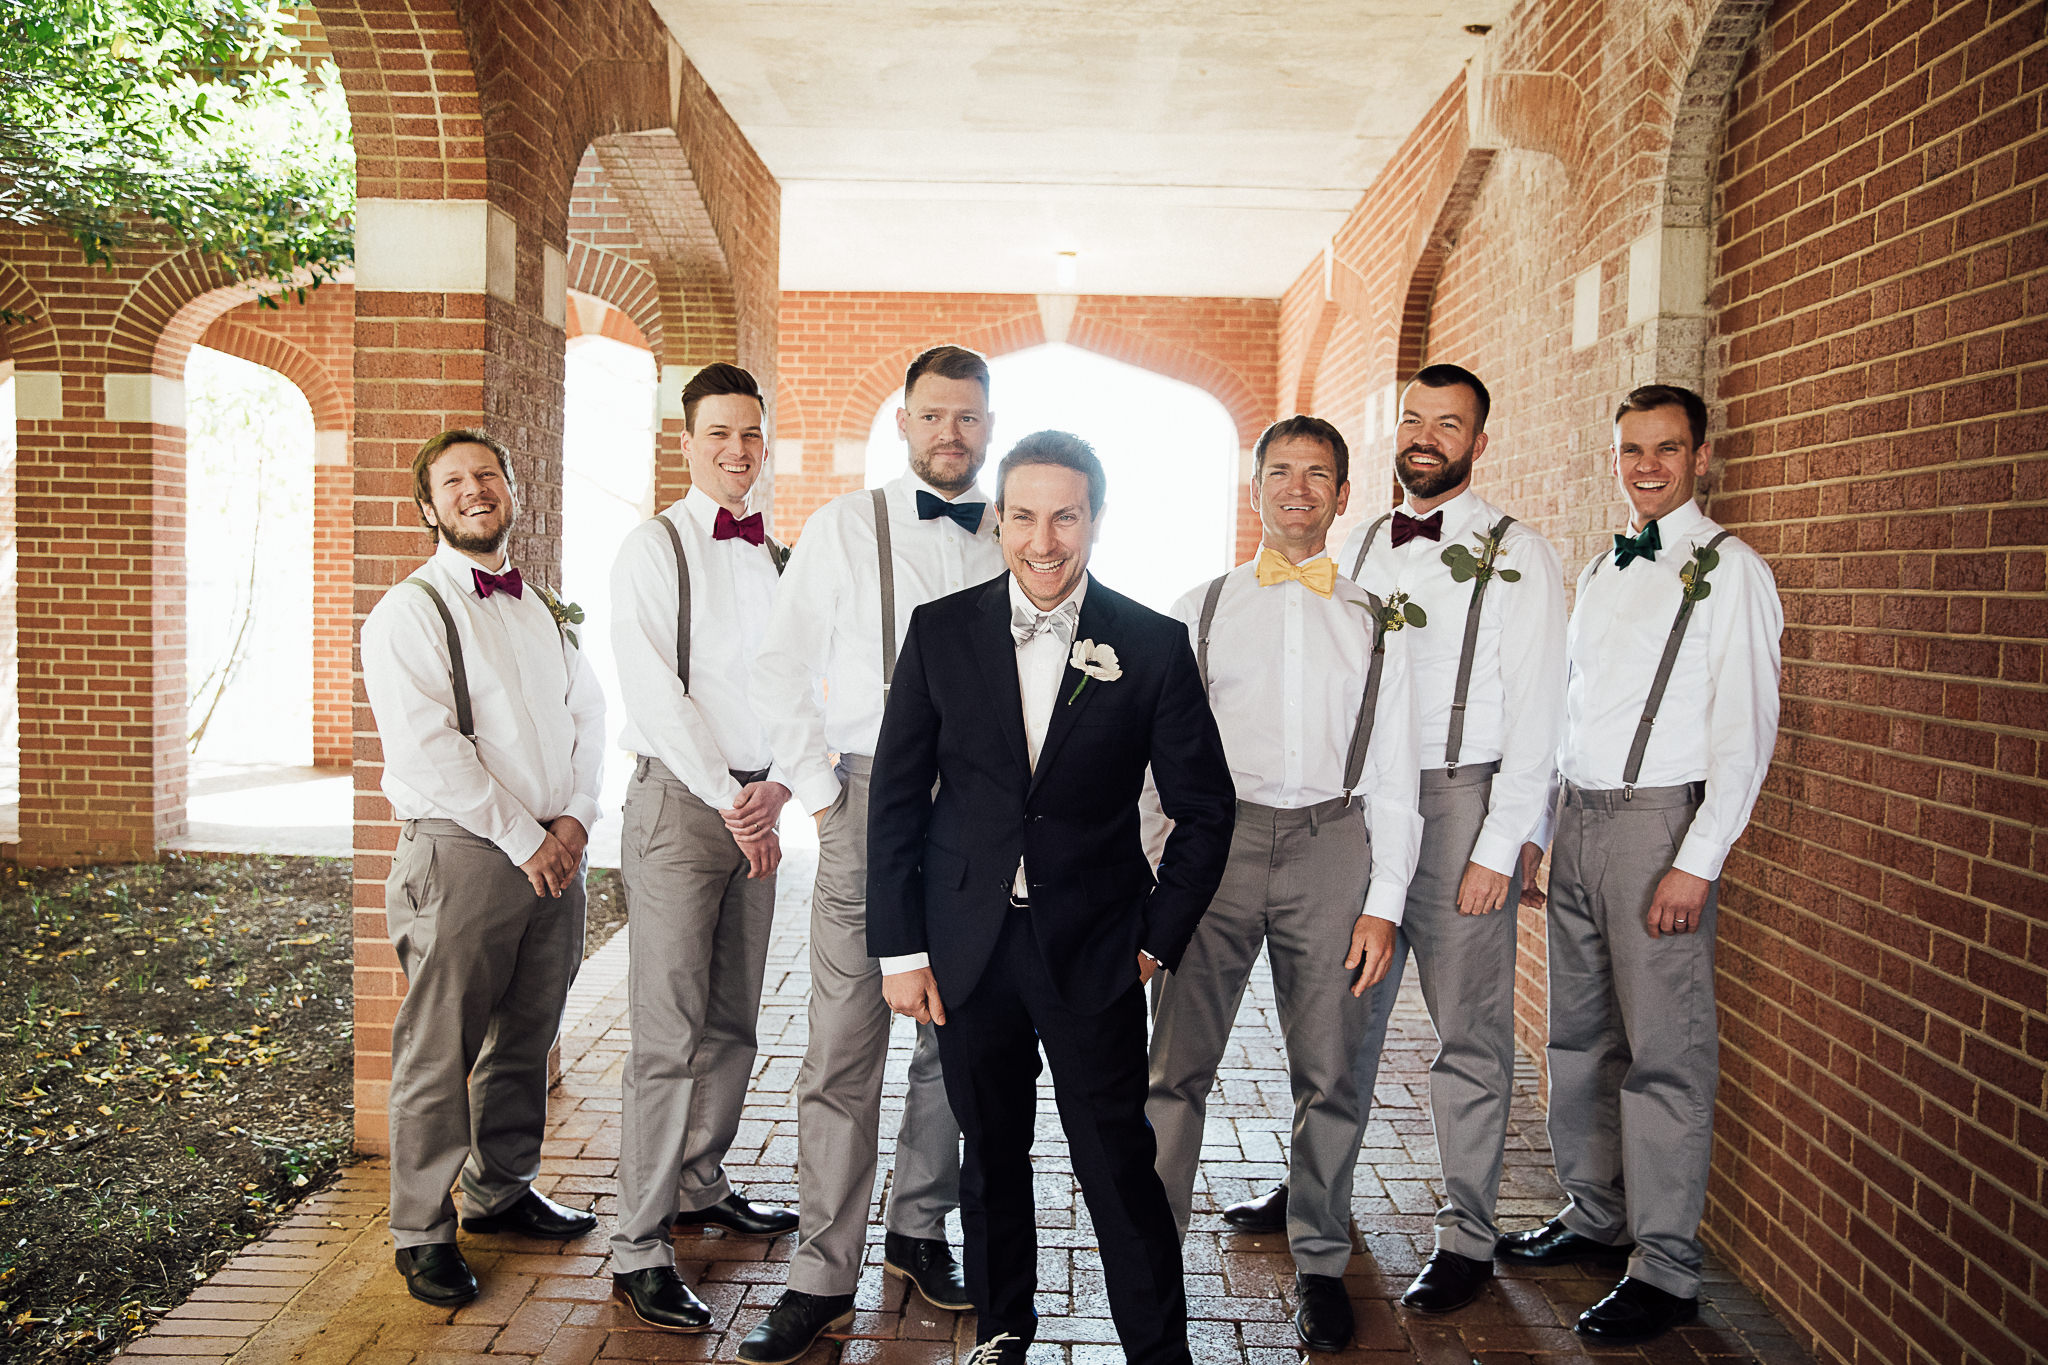 chattanooga-wedding-photographers-thewarmtharoundyou-waterhouse-pavilion-patten-chapel-wedding-sam-dusty (15 of 99).jpg